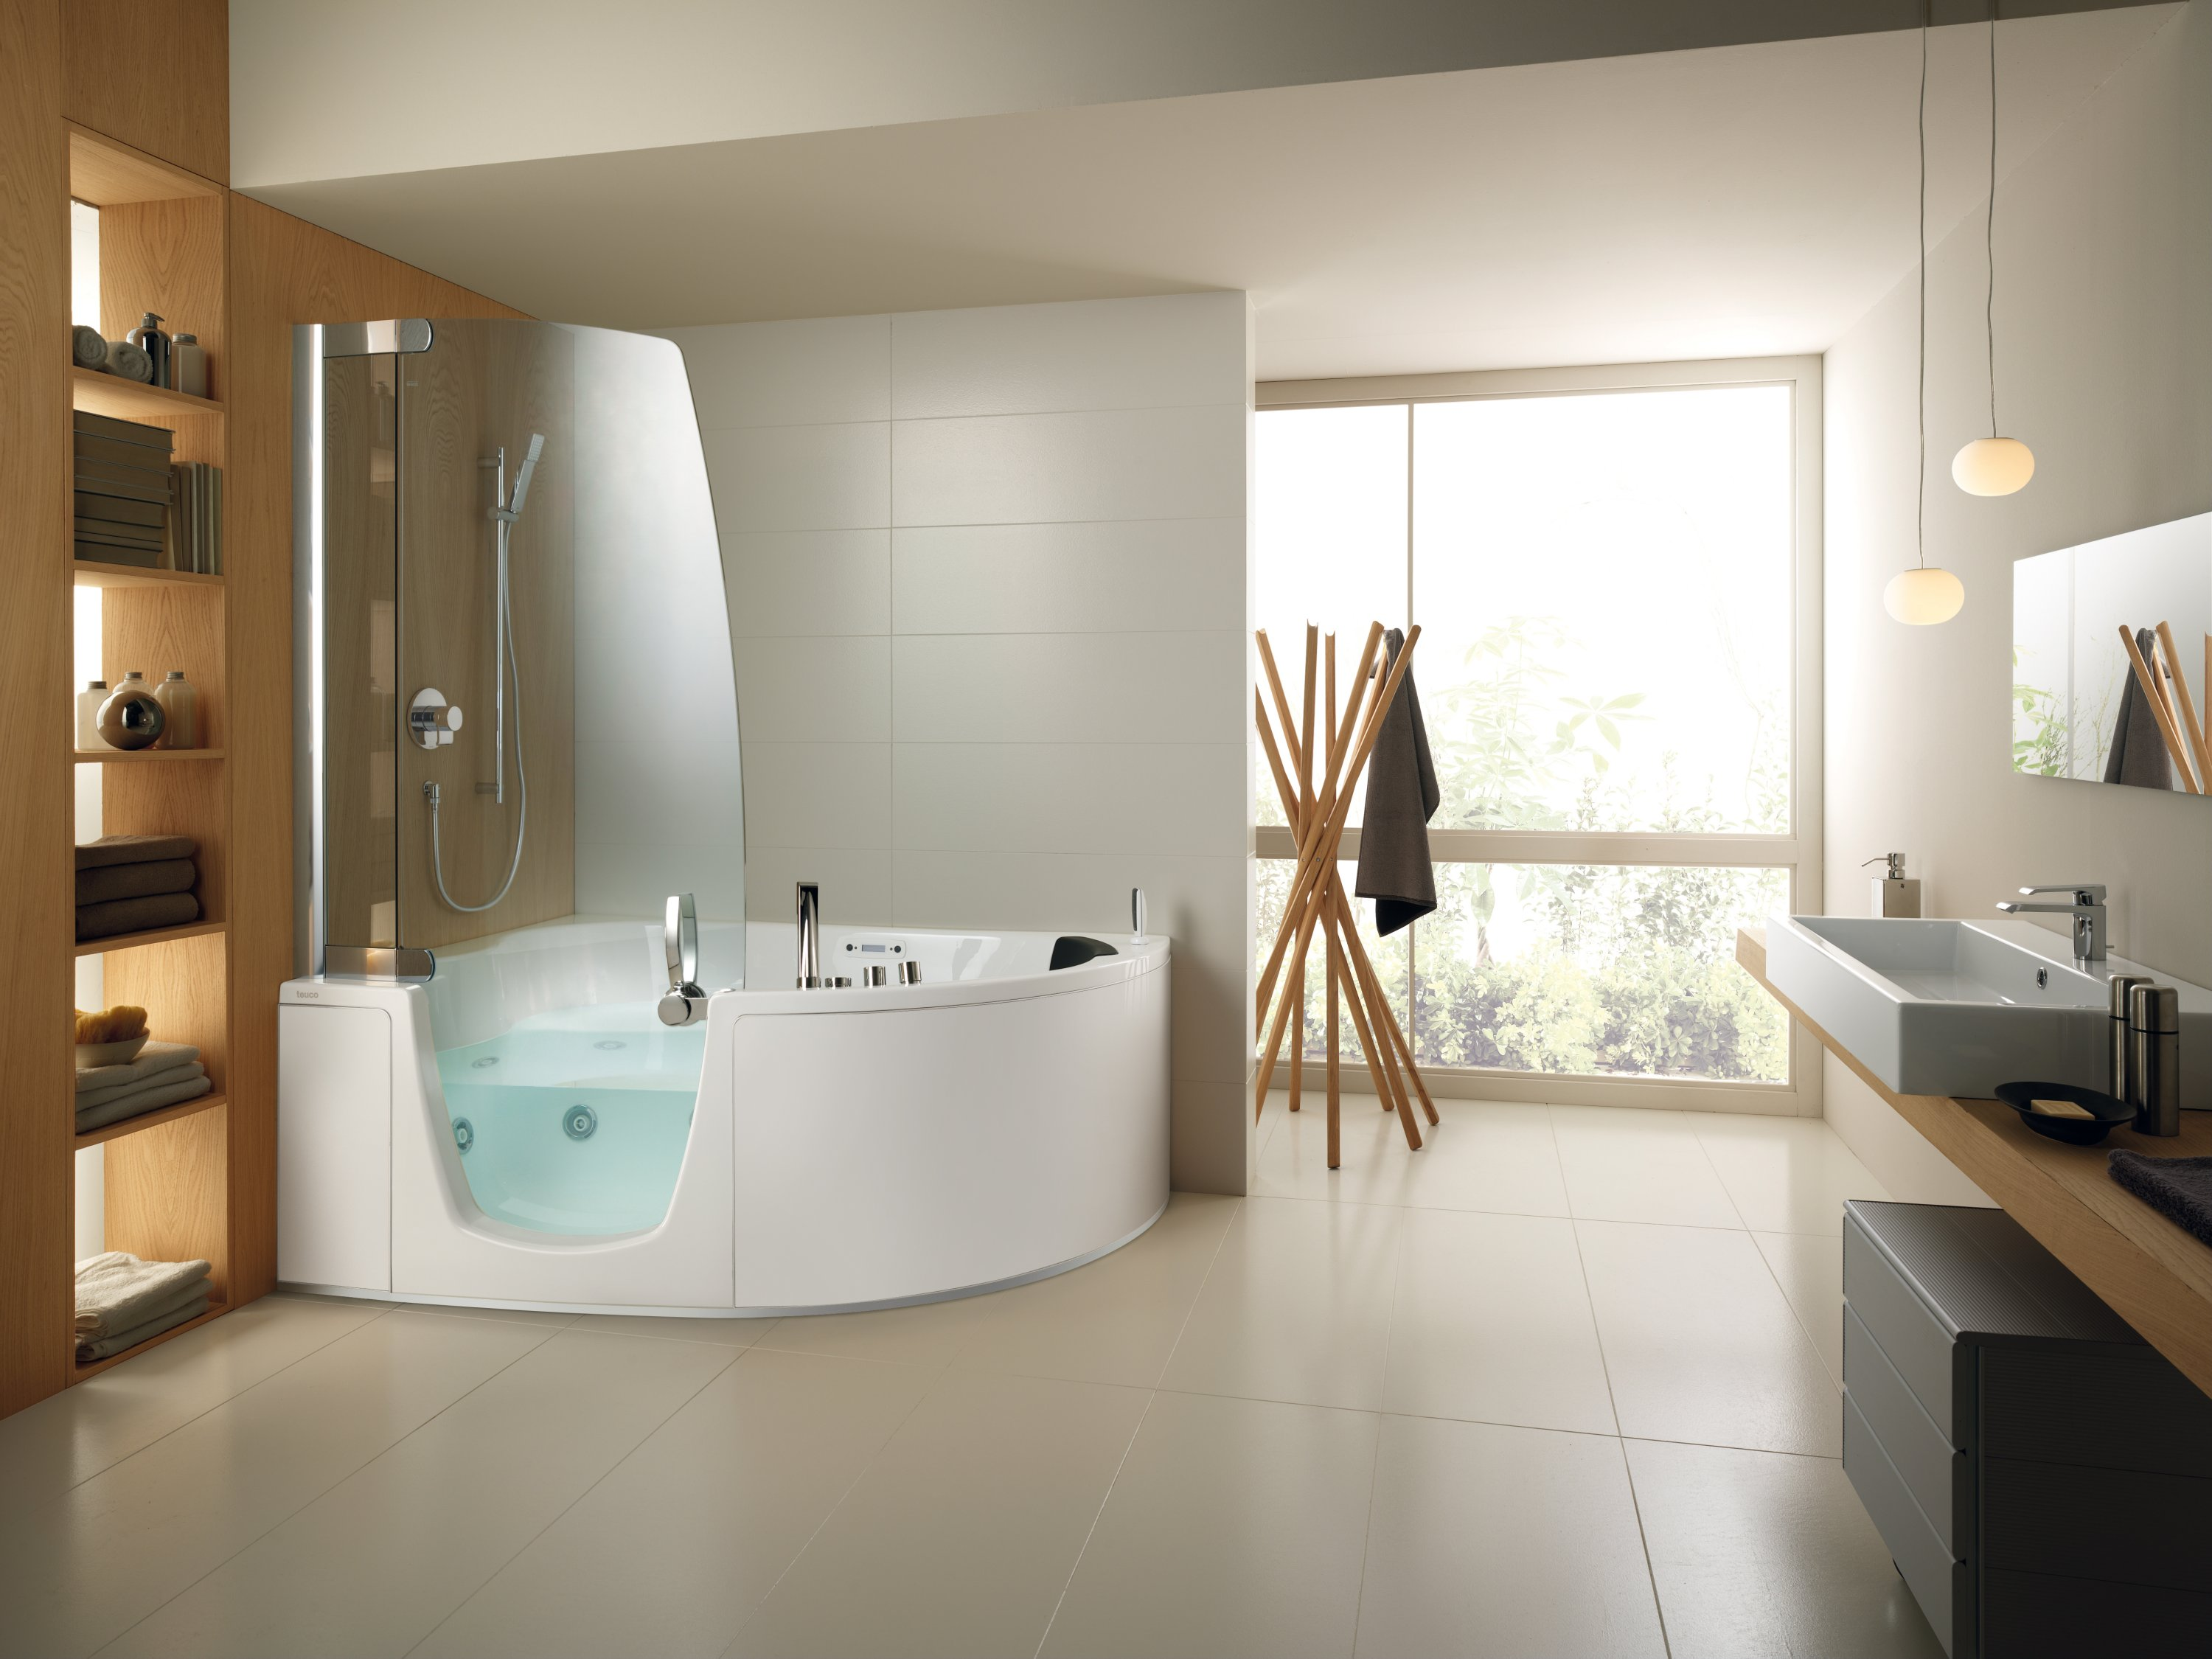 Accessible Bathroom Design For The Elderly Disabled Or Infirm